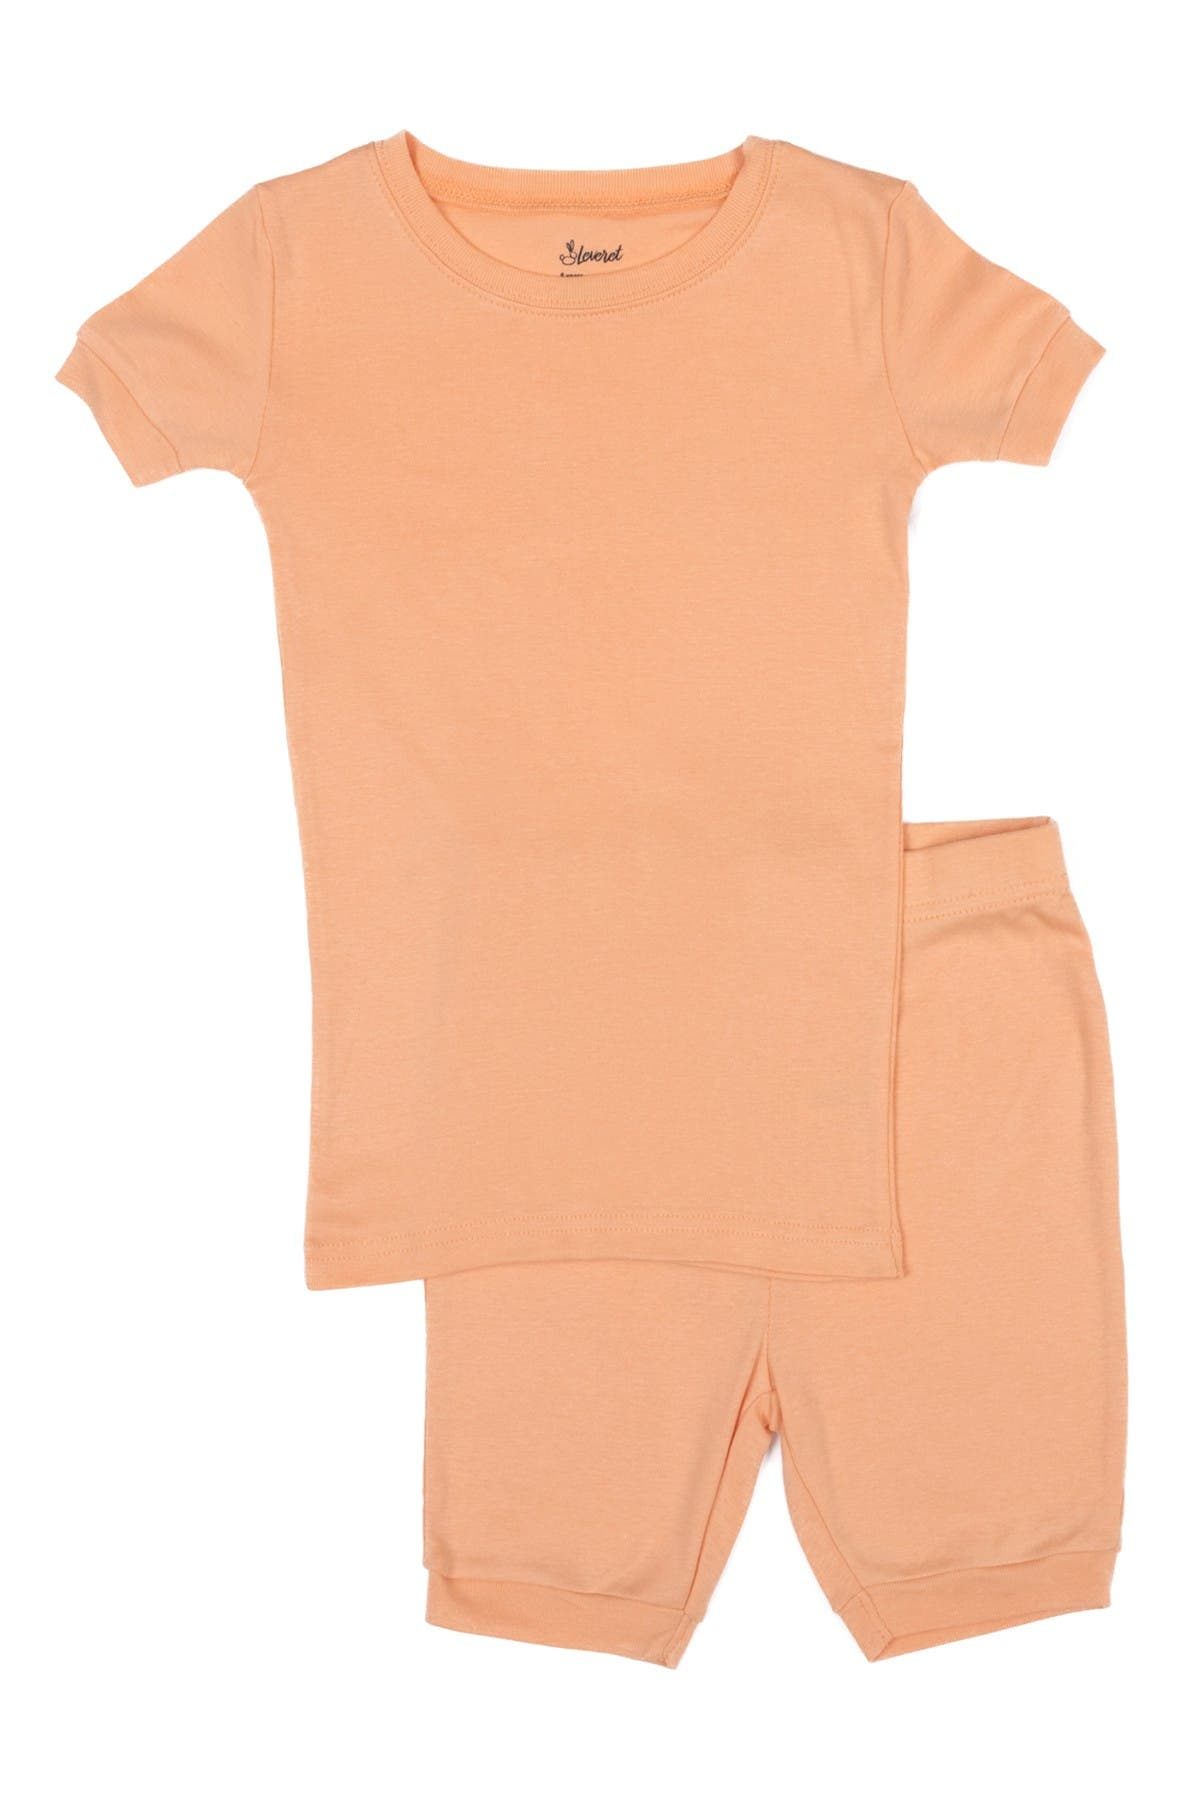 Image of Leveret Peach Two-Piece Cotton Shorts Pajamas